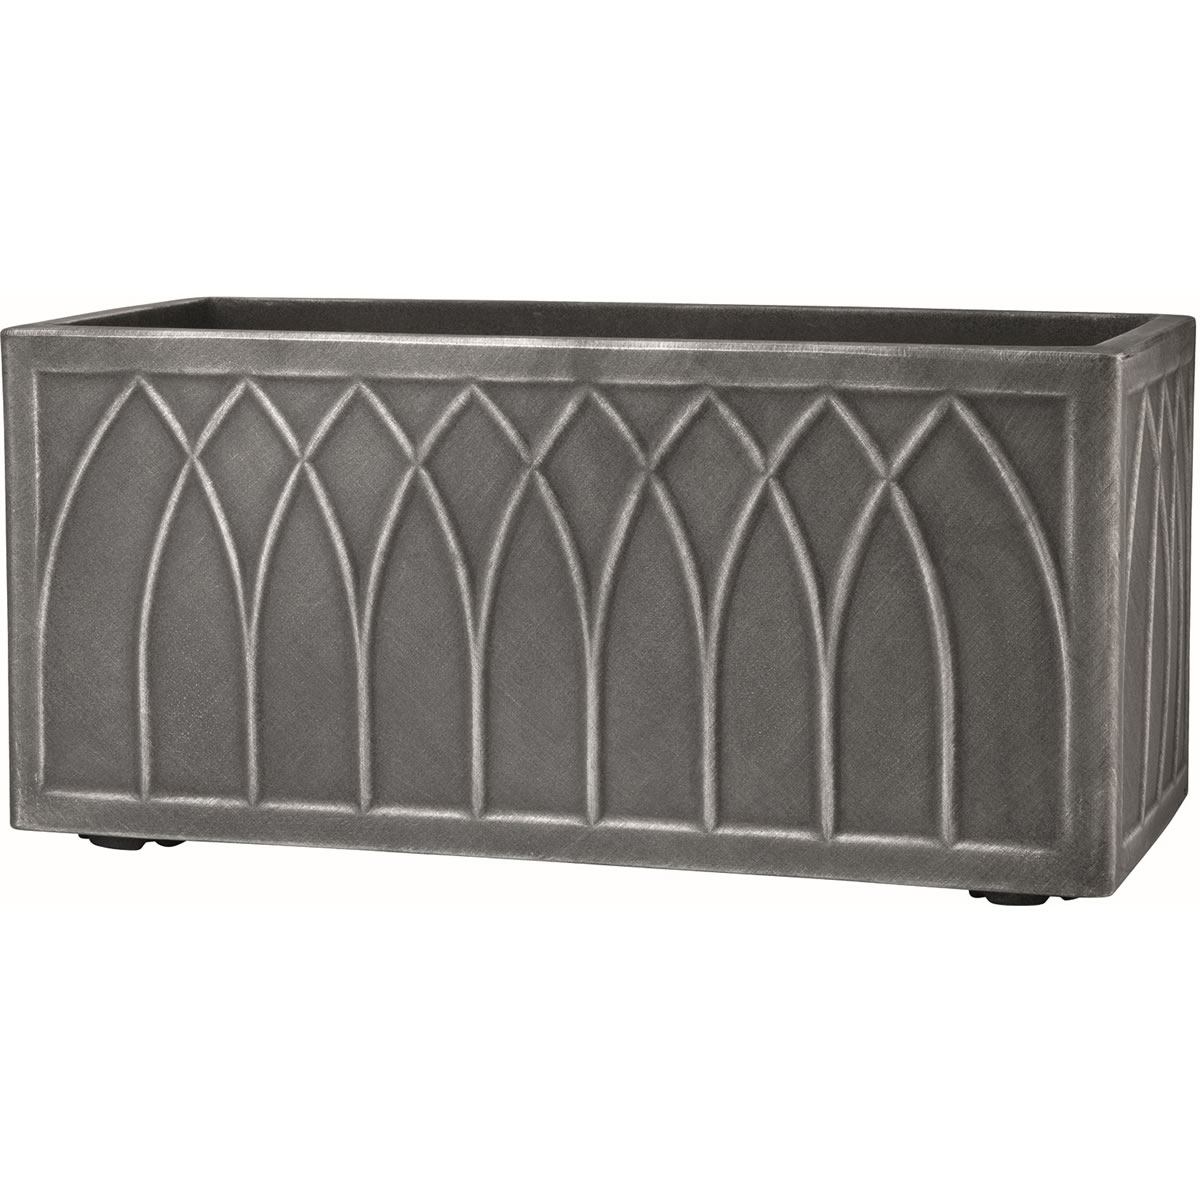 Extra image of Stewart Versailles Trough Planter in Pewter - 70cm